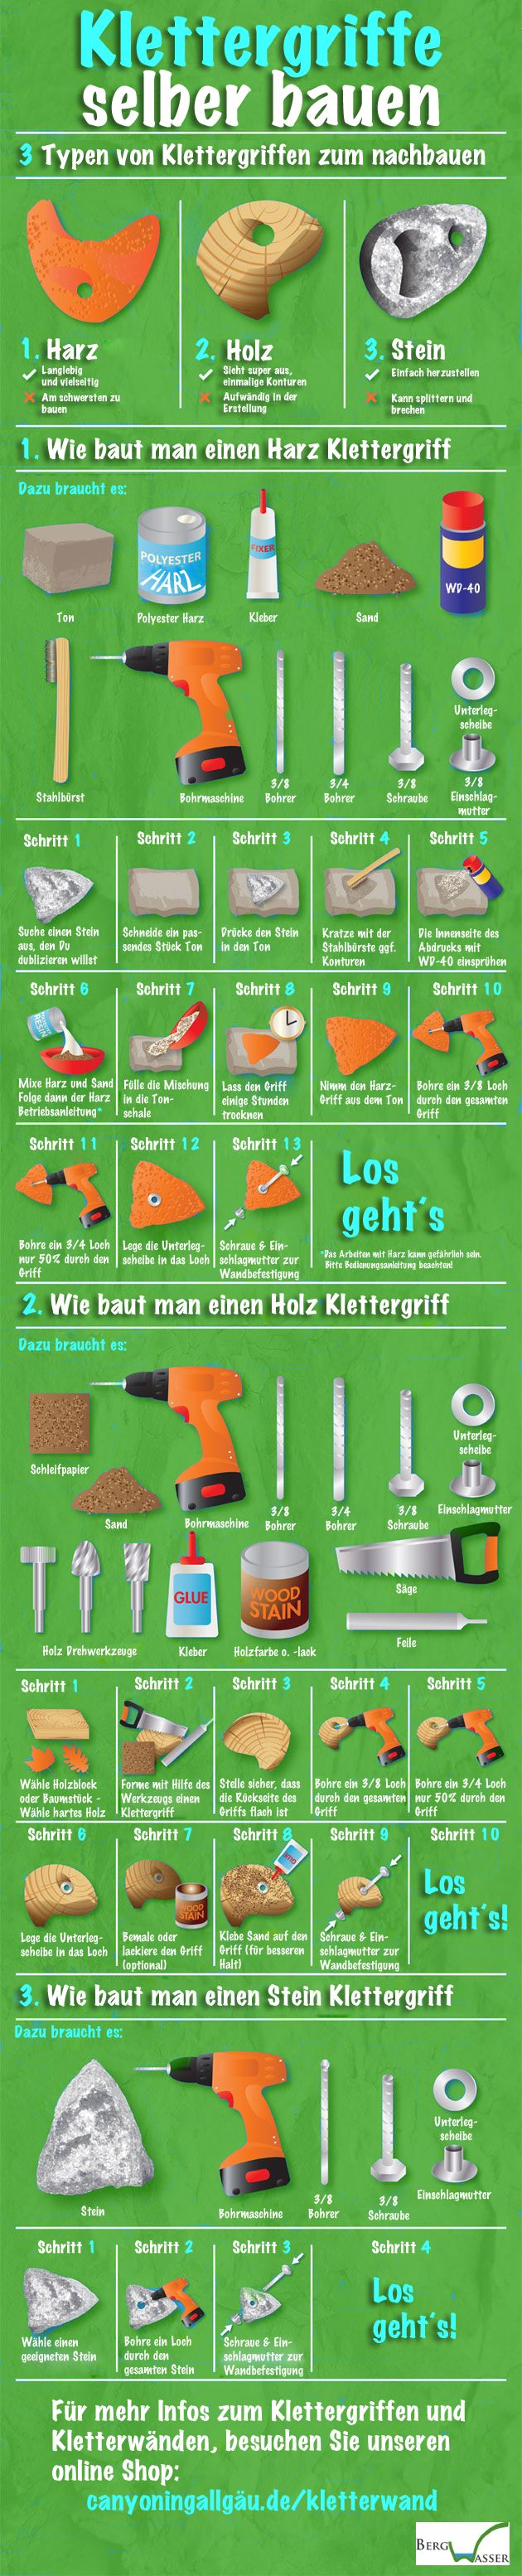 Klettergriffe Do it yourself Anleitung